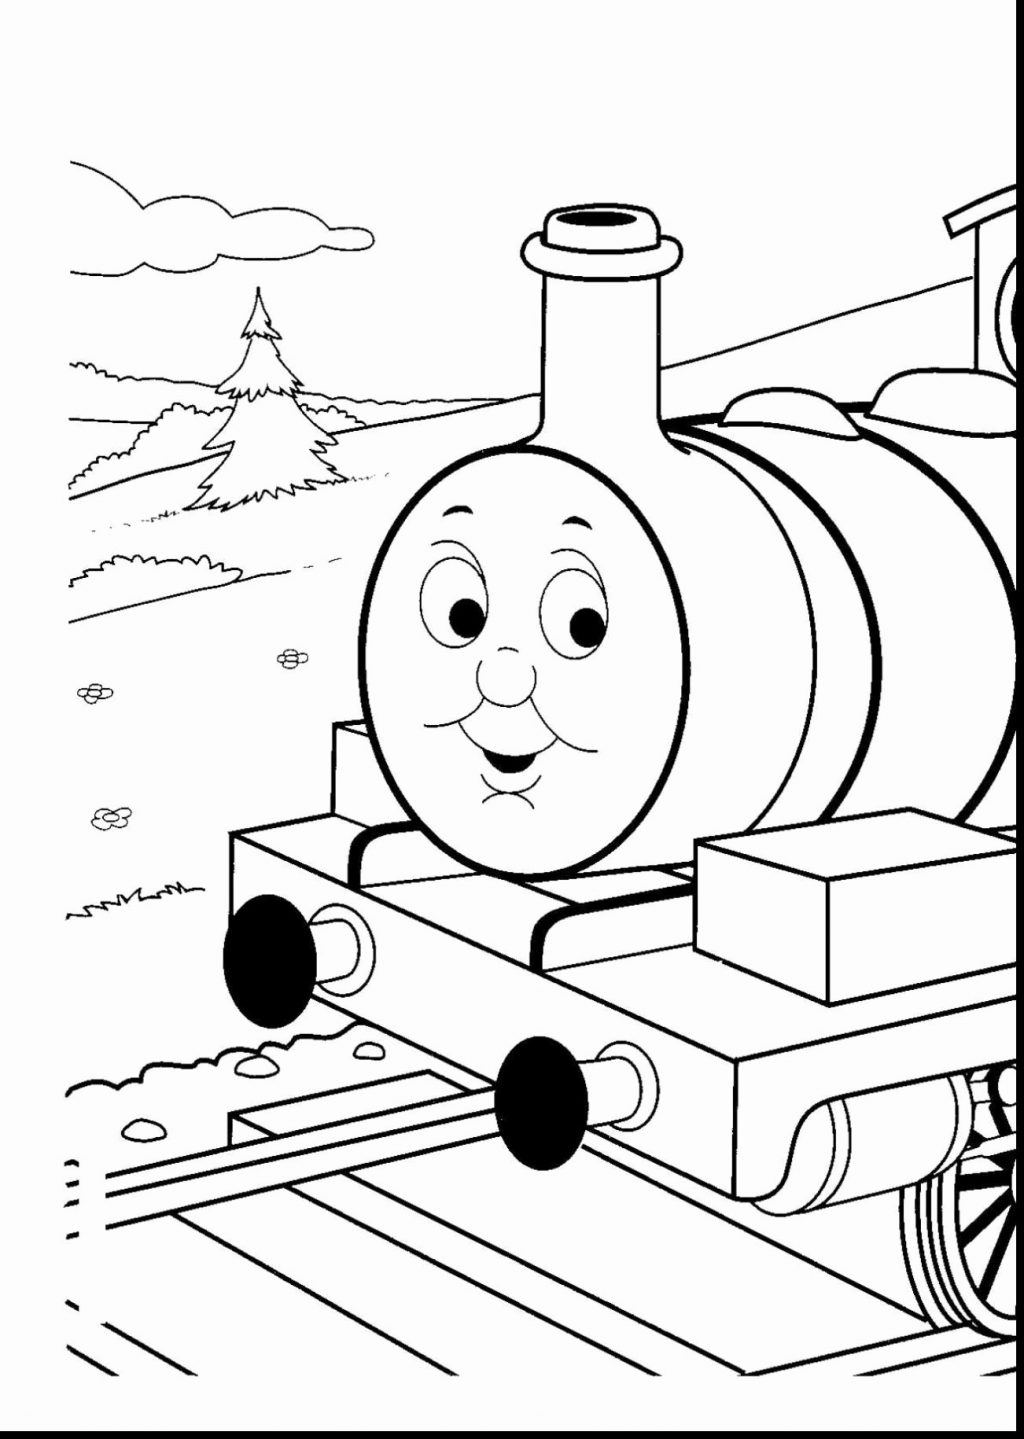 hight resolution of 1024x1439 coloring pages colorings trains unique cool free train awesome thomas drawing